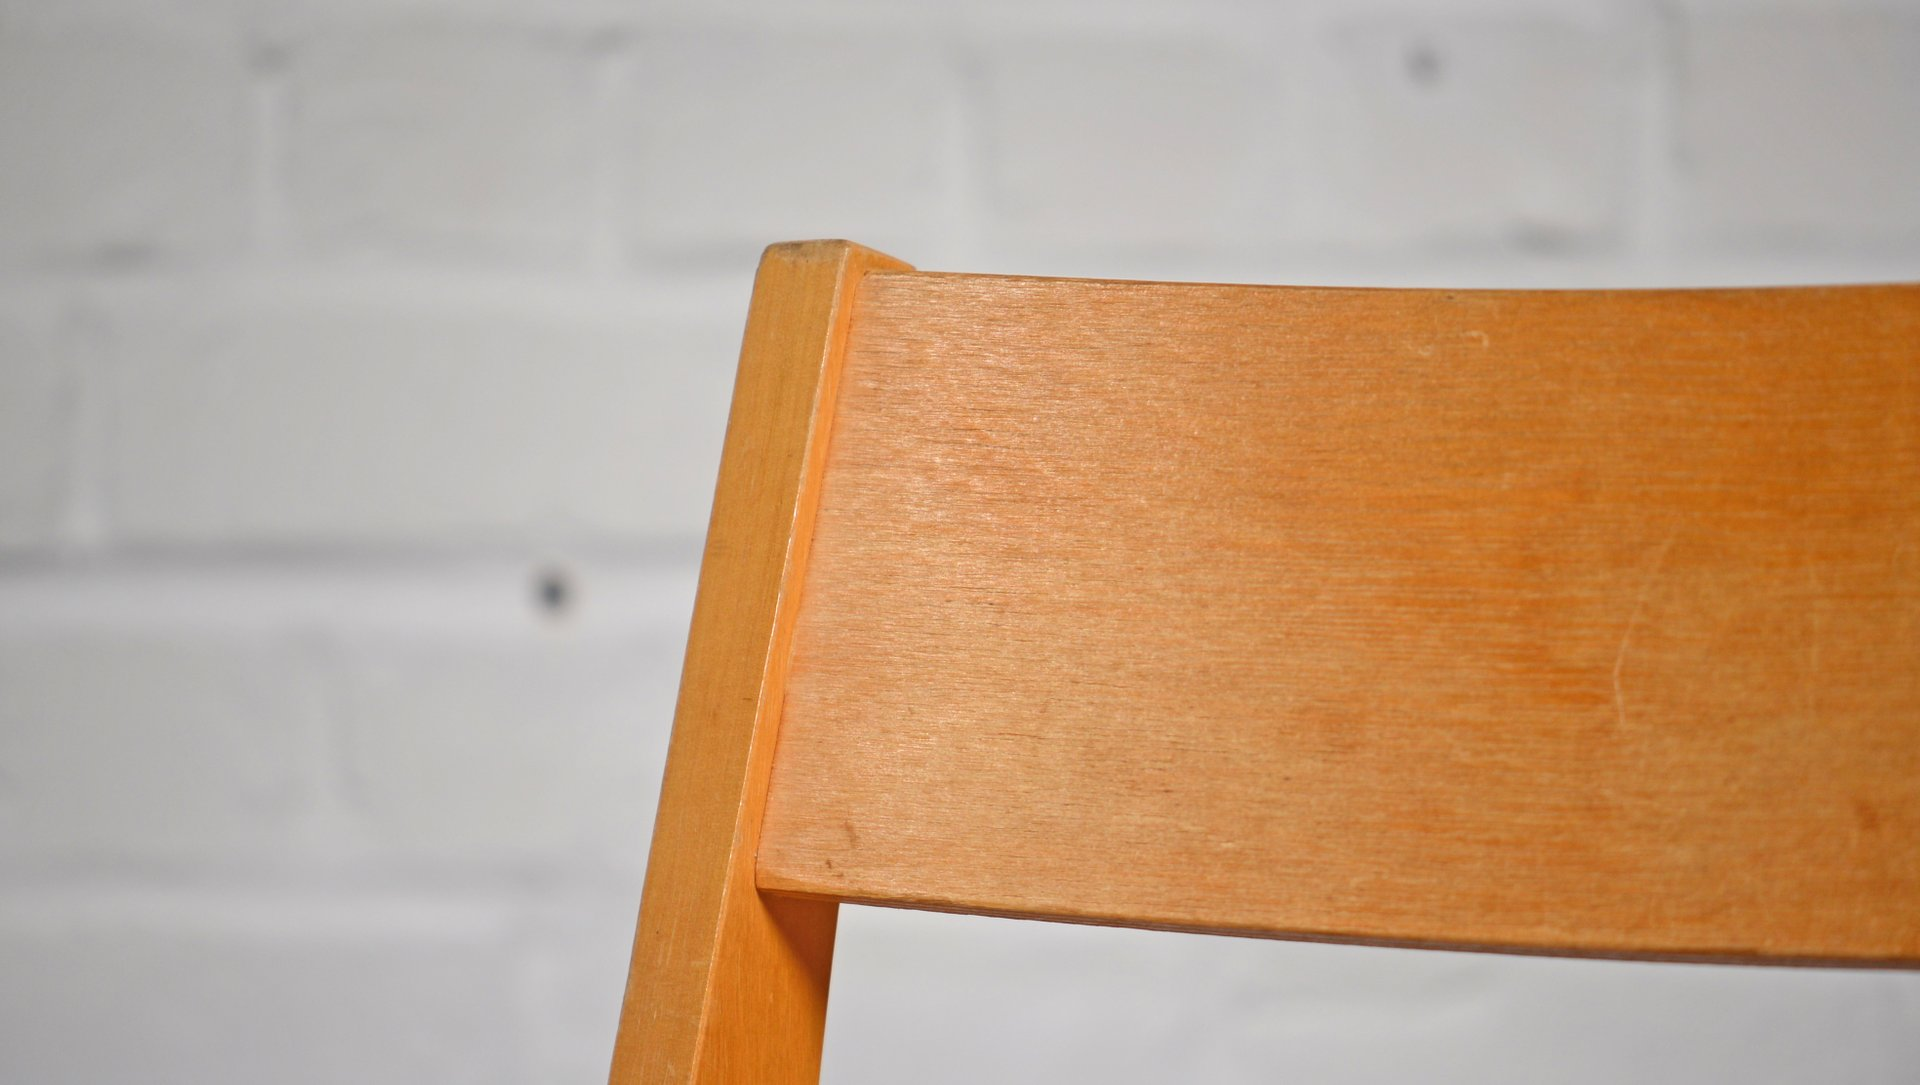 Swedish Stacking Chair by Sven Markelius 1931 for sale at Pamono